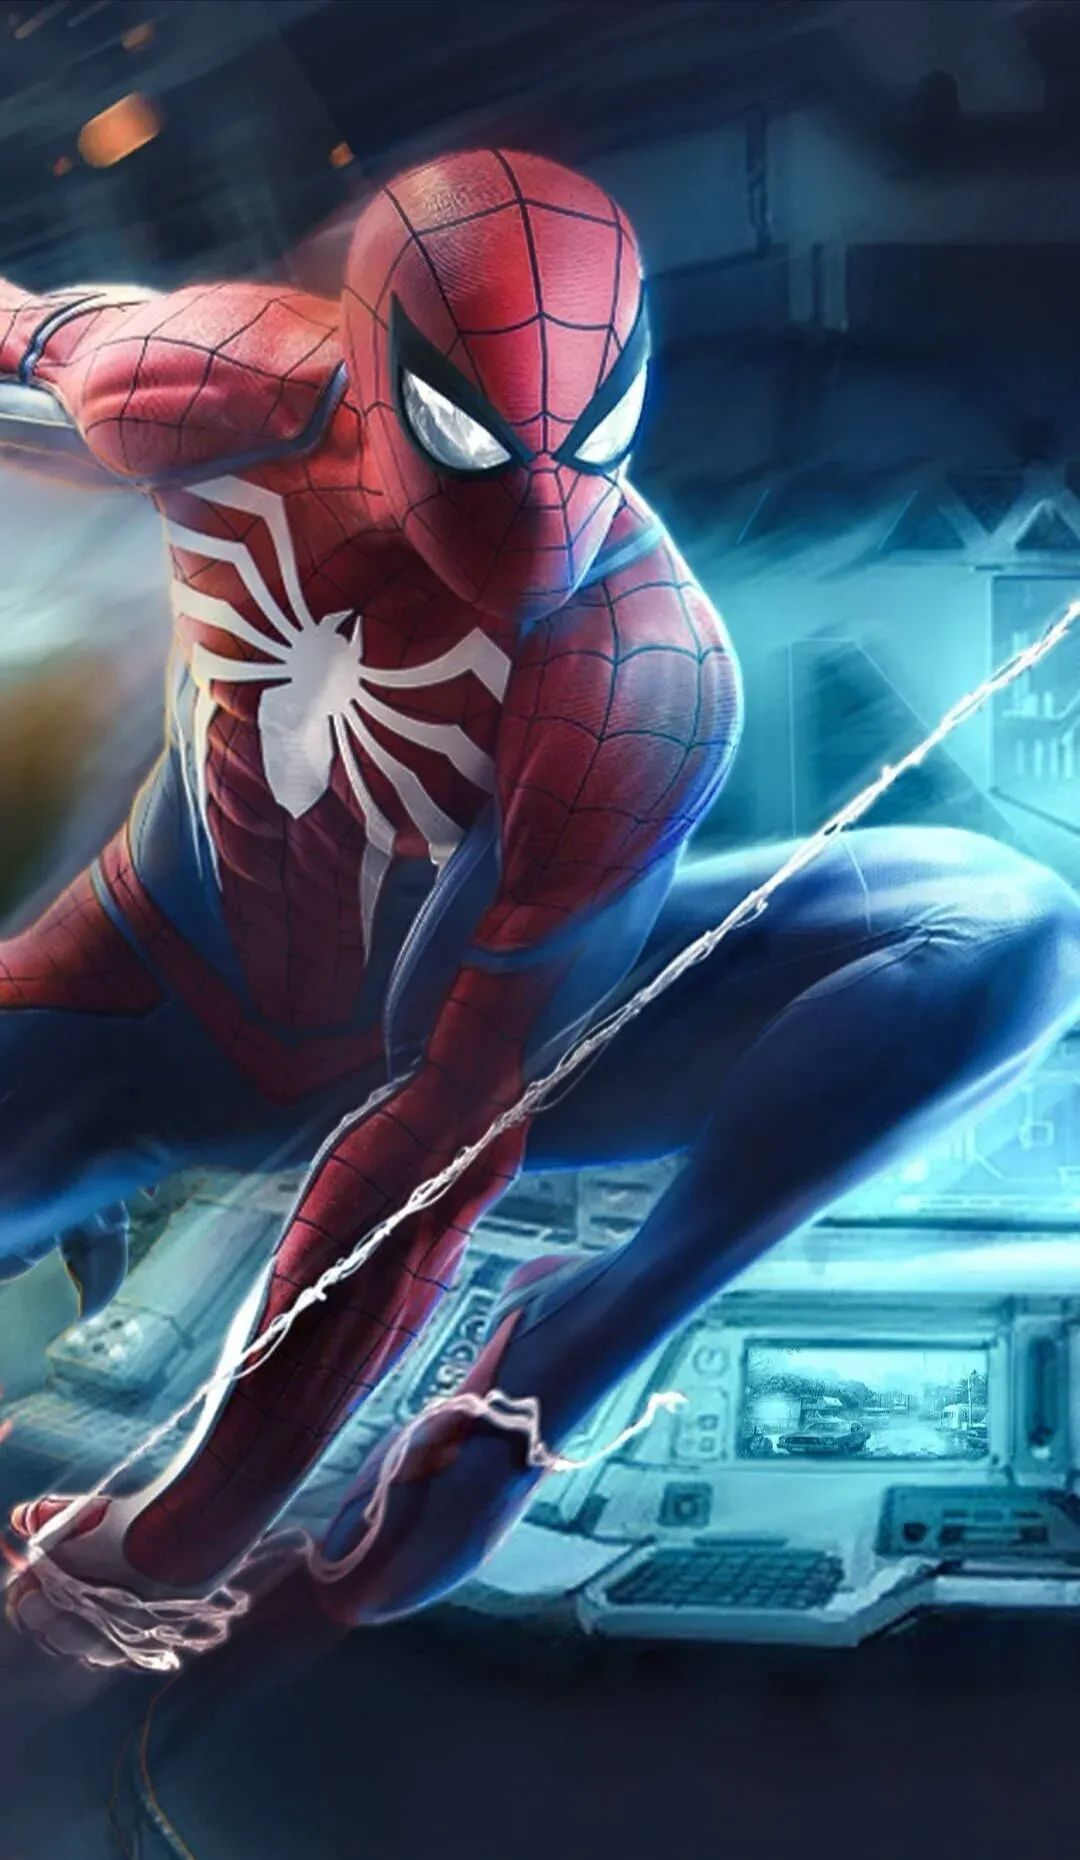 Spiderman Hd Wallpaper For Android พ นหล ง